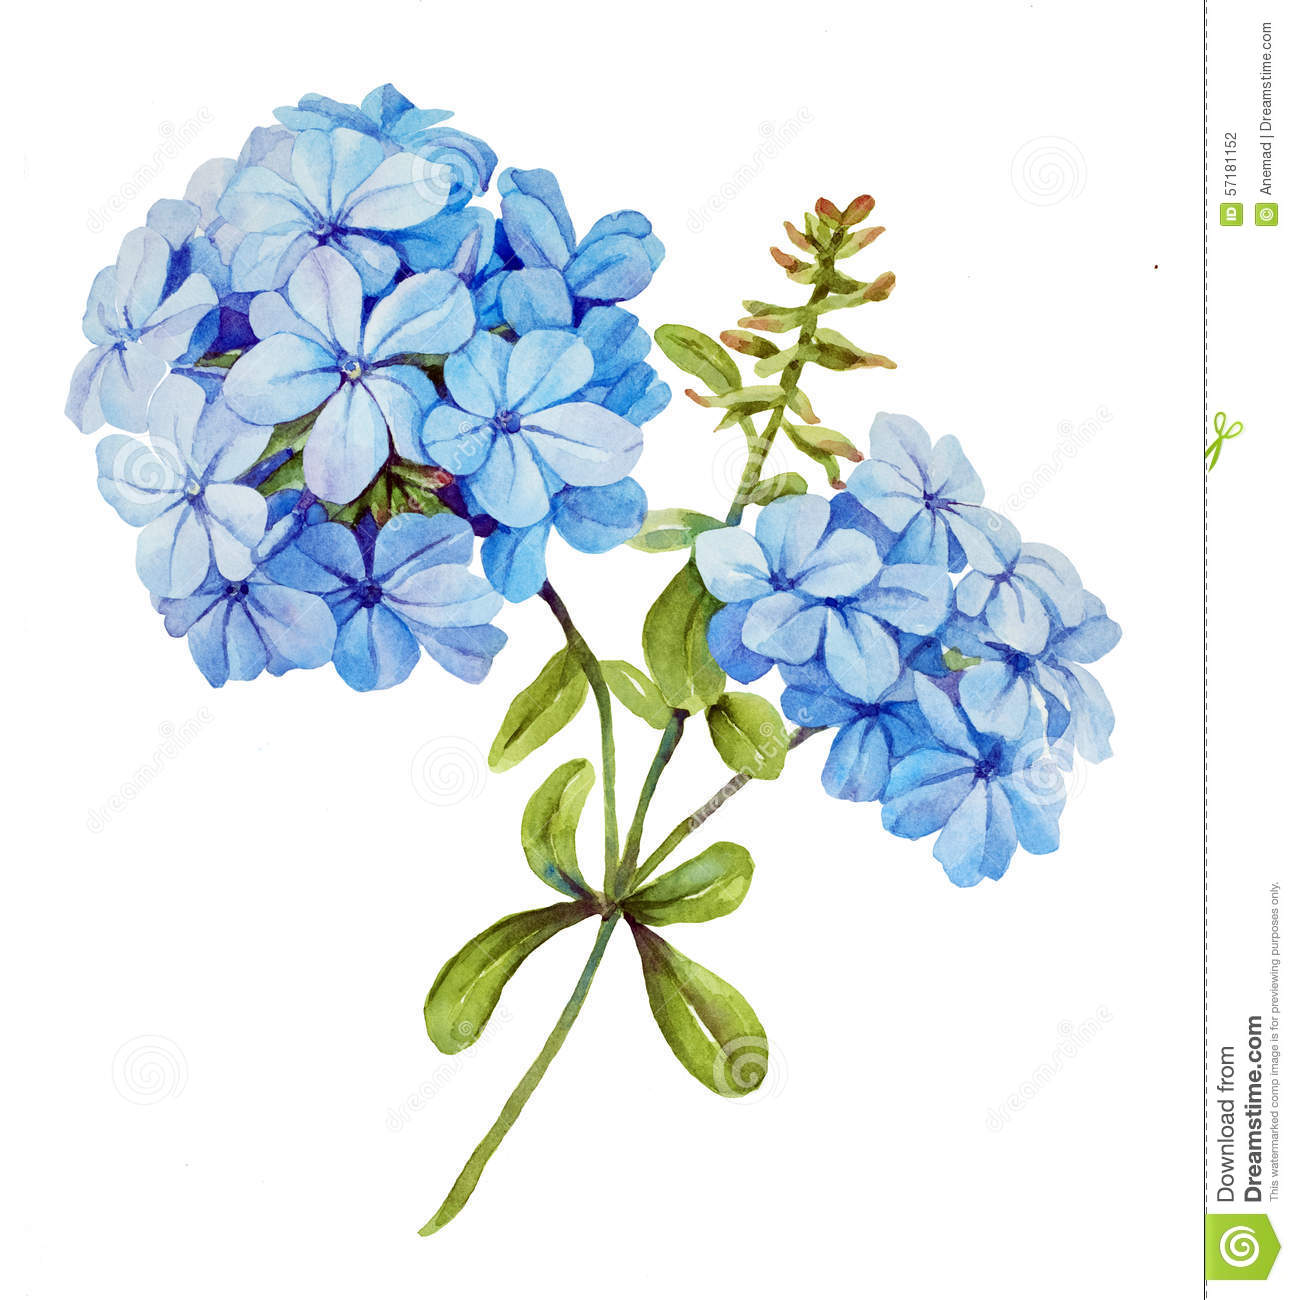 Blue Jasmine Watercolor Flower Stock Illustration - Image: 57181152